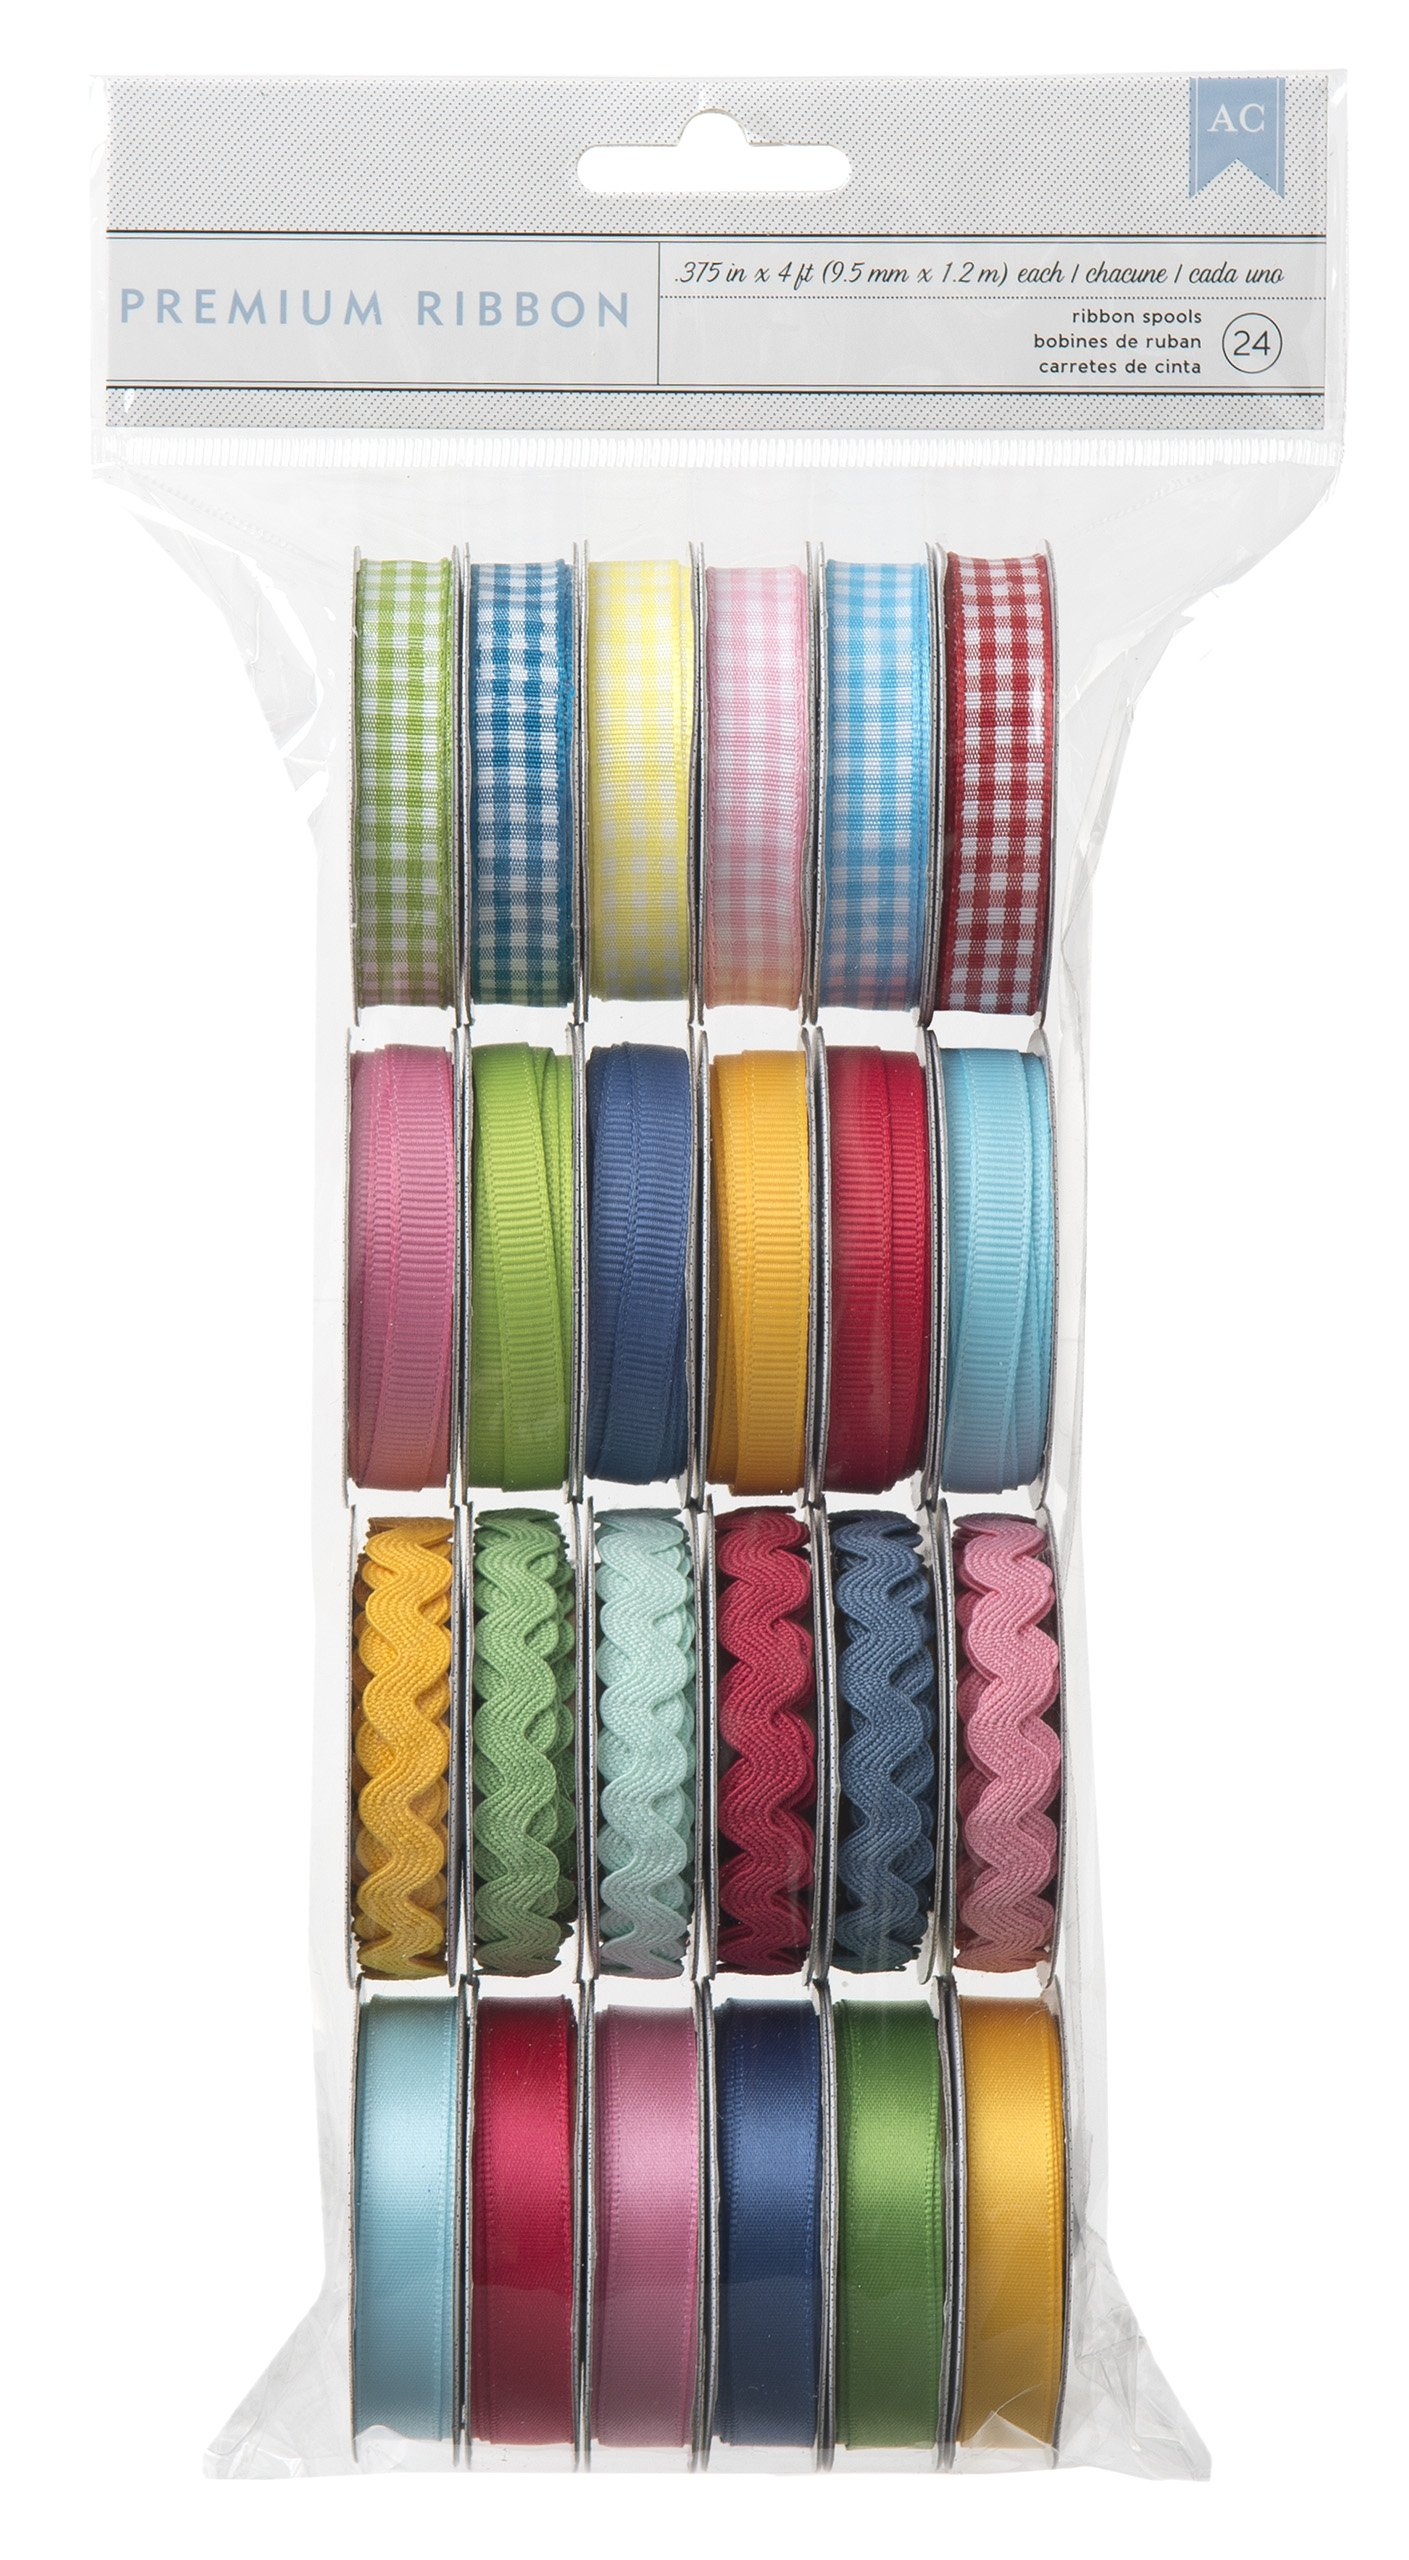 American Crafts Extreme Value Ribbon Variety Pack 24 pack | Includes 6 gingham rolls, 6 basic grosgrain rolls, 6 ric rac rolls, and 6 solid satin rolls in assorted colors